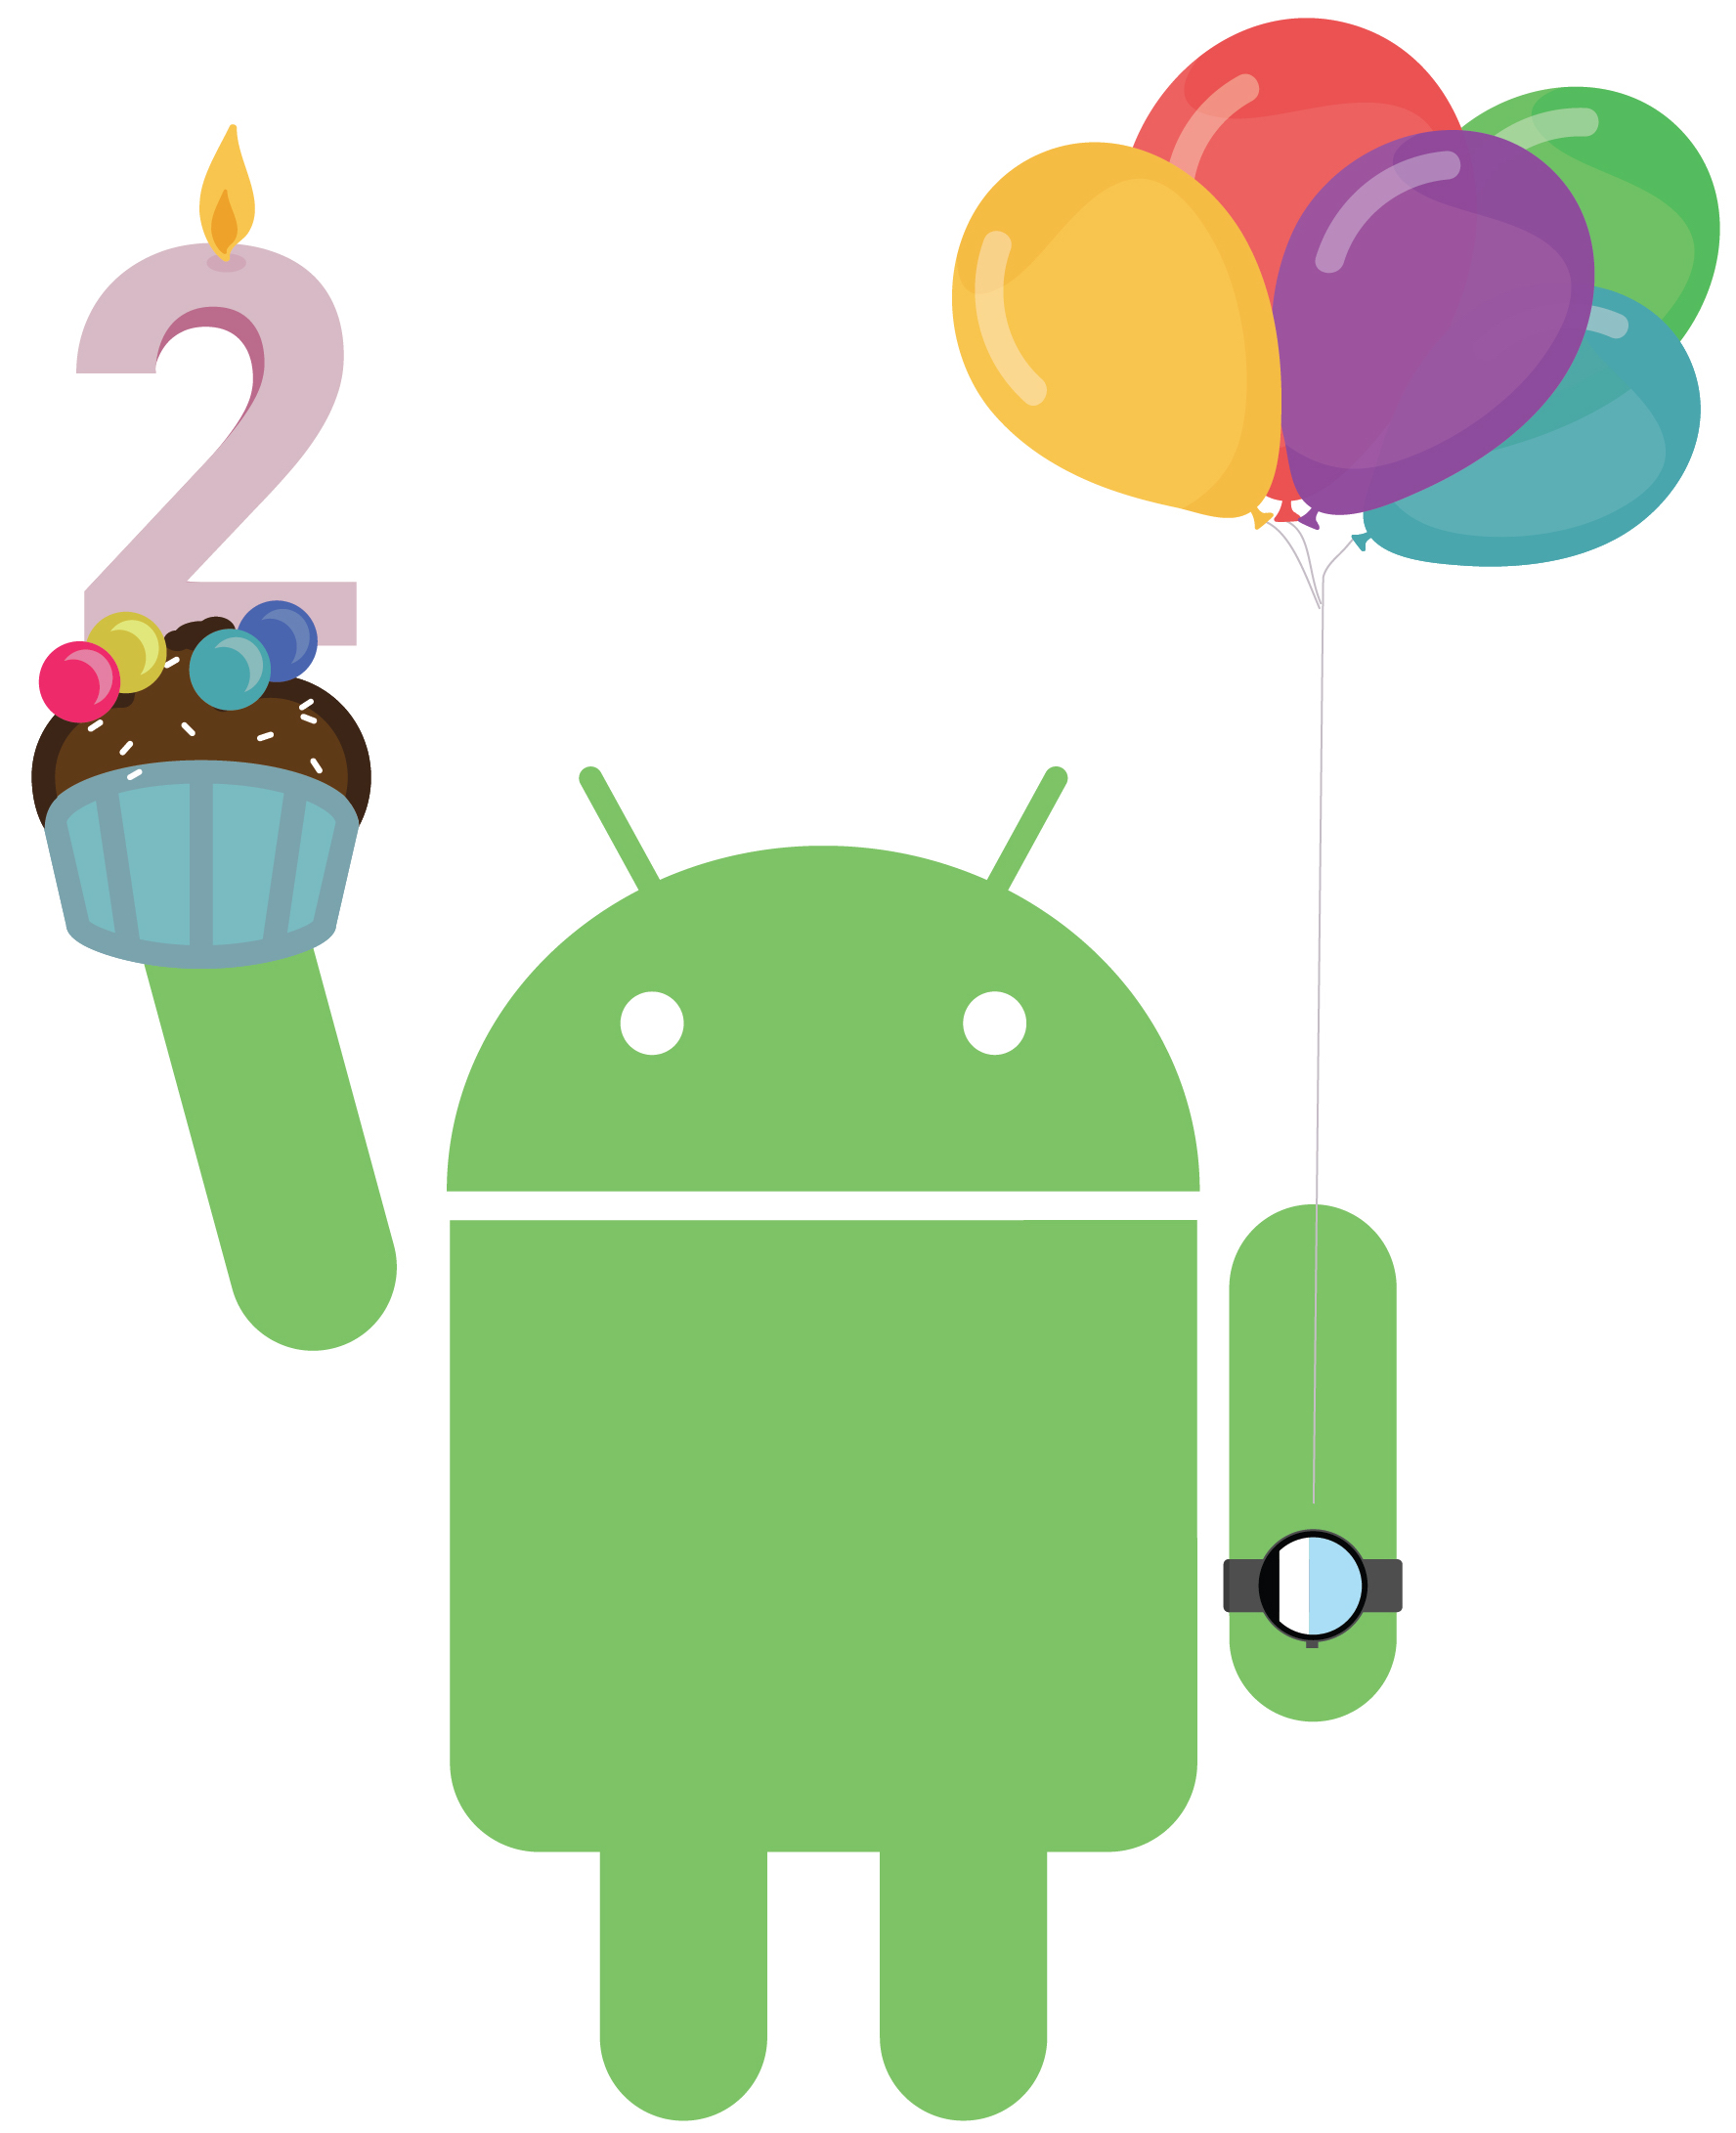 5.18_Android_A01_Cupcake_A01